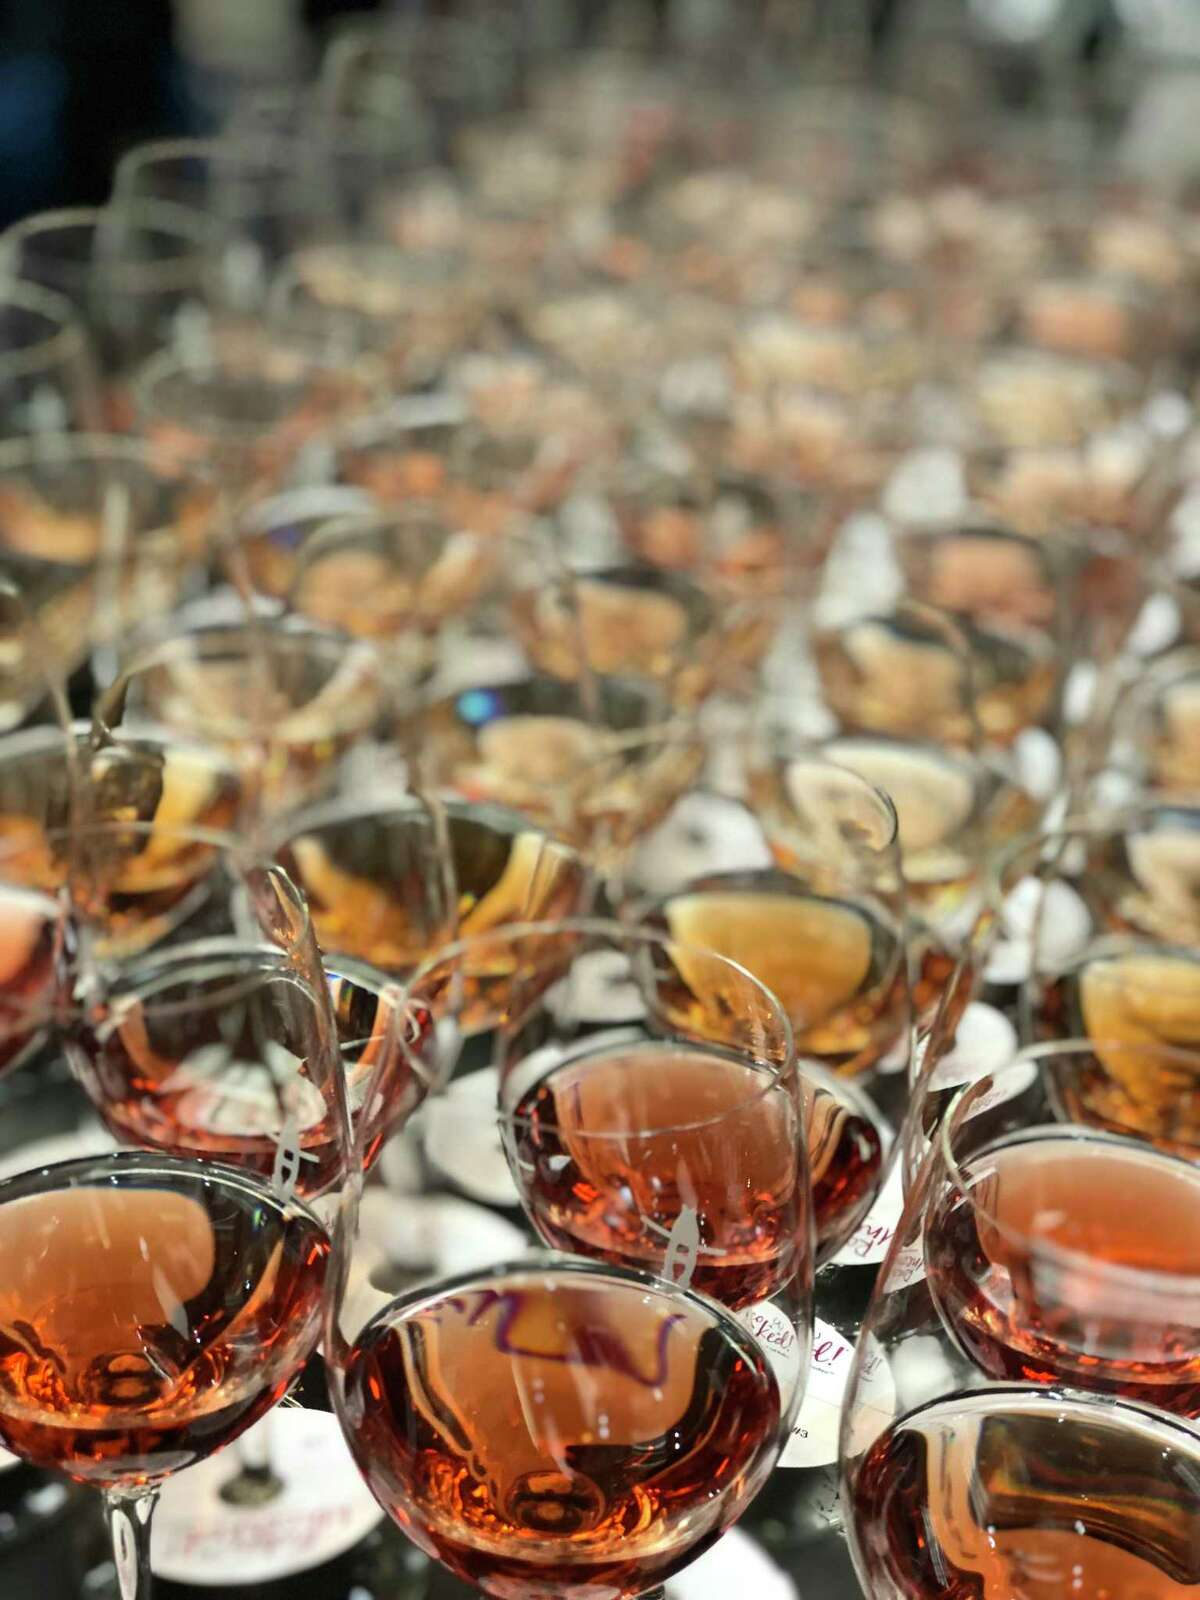 Wine aficionados judged a record3,528 entries from 19 countries in the 2019 edition of theRodeo Uncorked! International Wine Competition. In the end,Piper-Heidsieck Brut prevailed, becoming the first Champagne to be named Grand Champion Best of Show in the history of the competition.